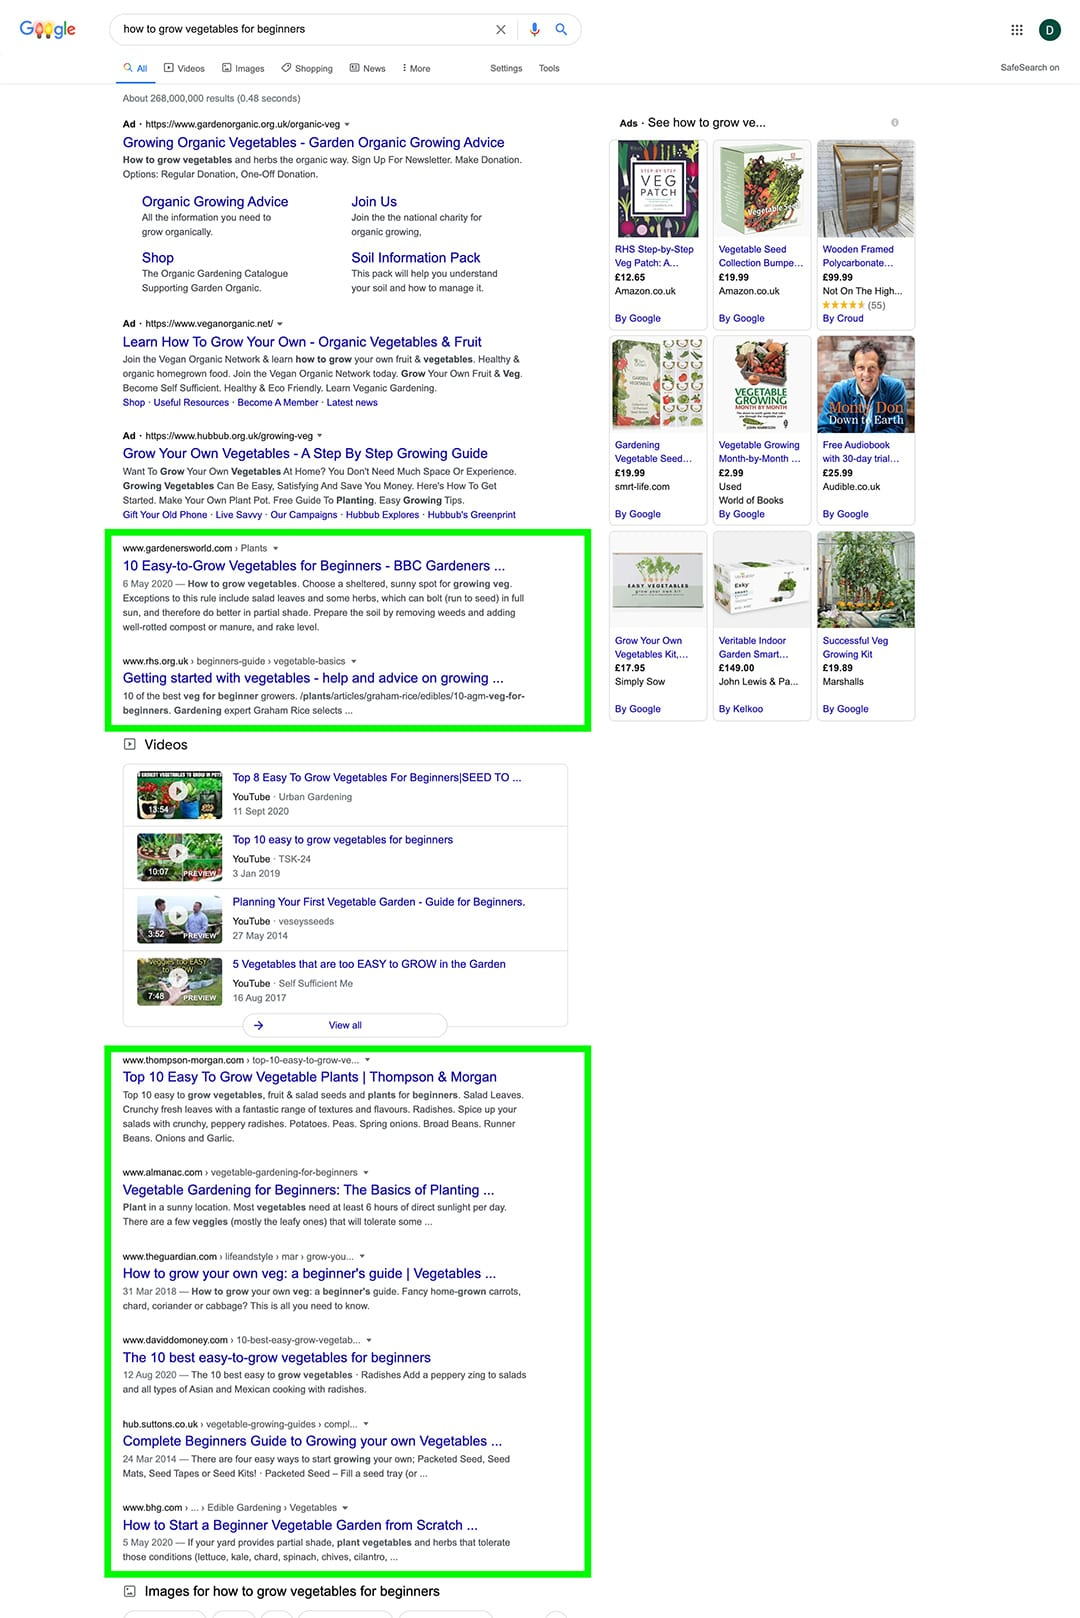 seo organic search results on google search engine results page